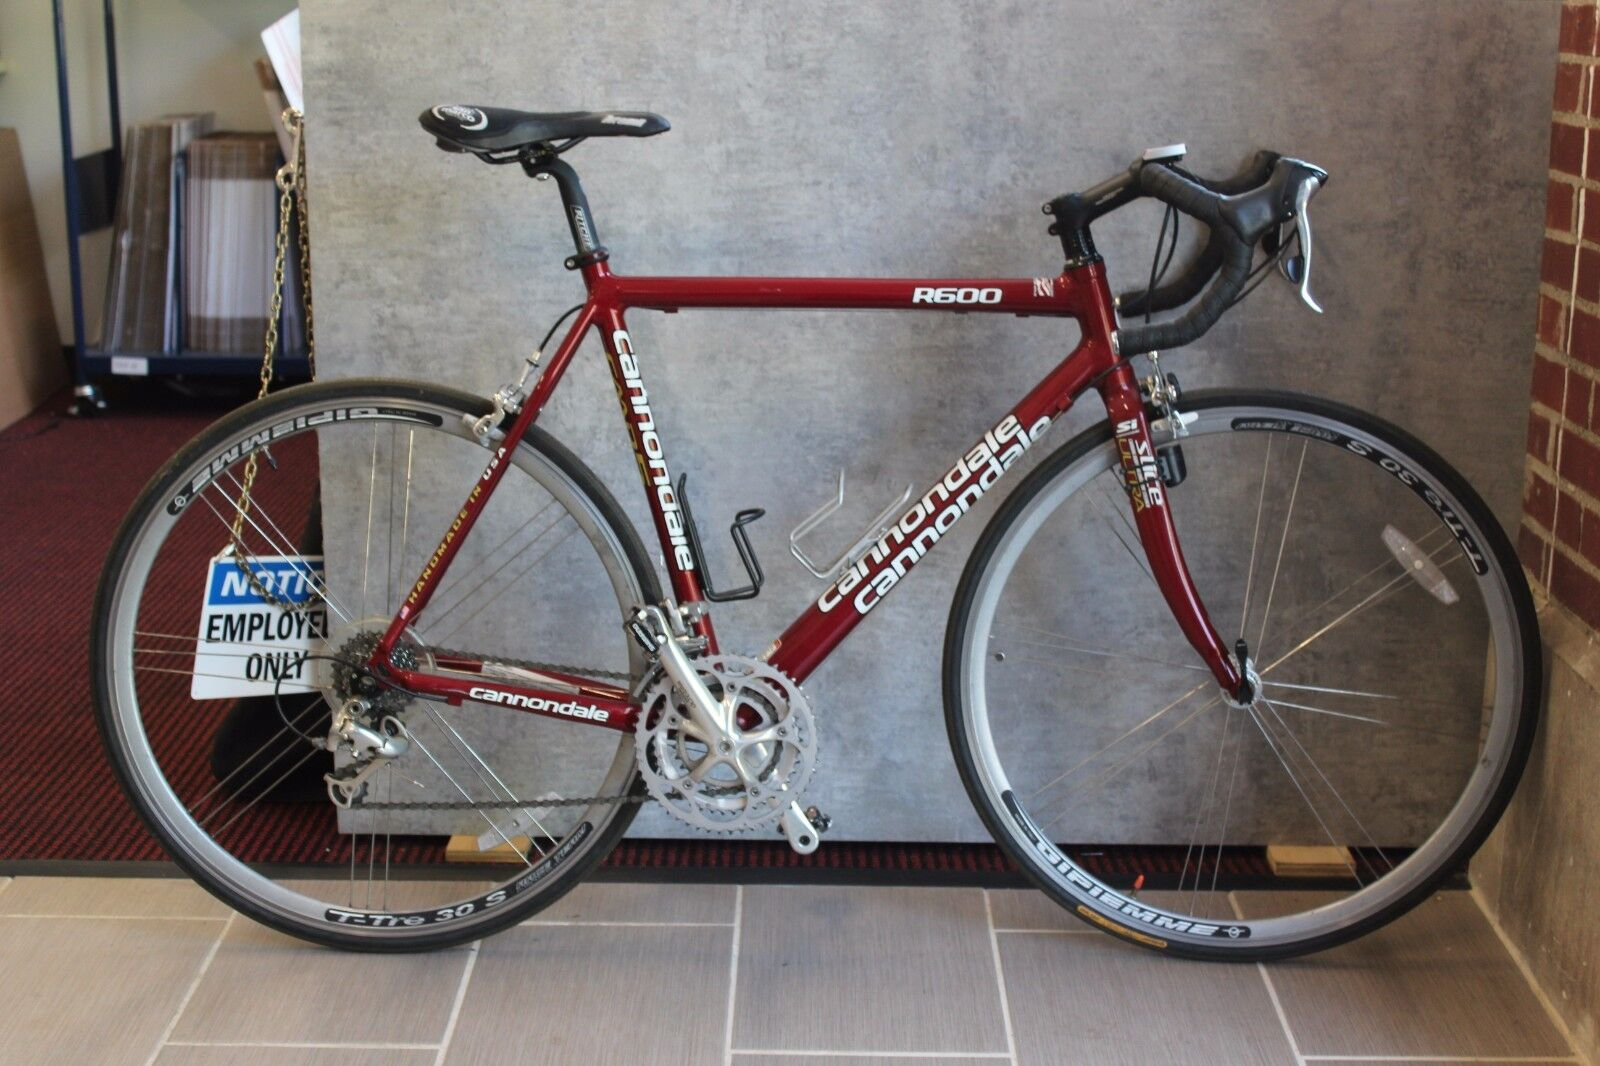 2004 Cannondale R600 105/ Ultegra Road Bike 54cm